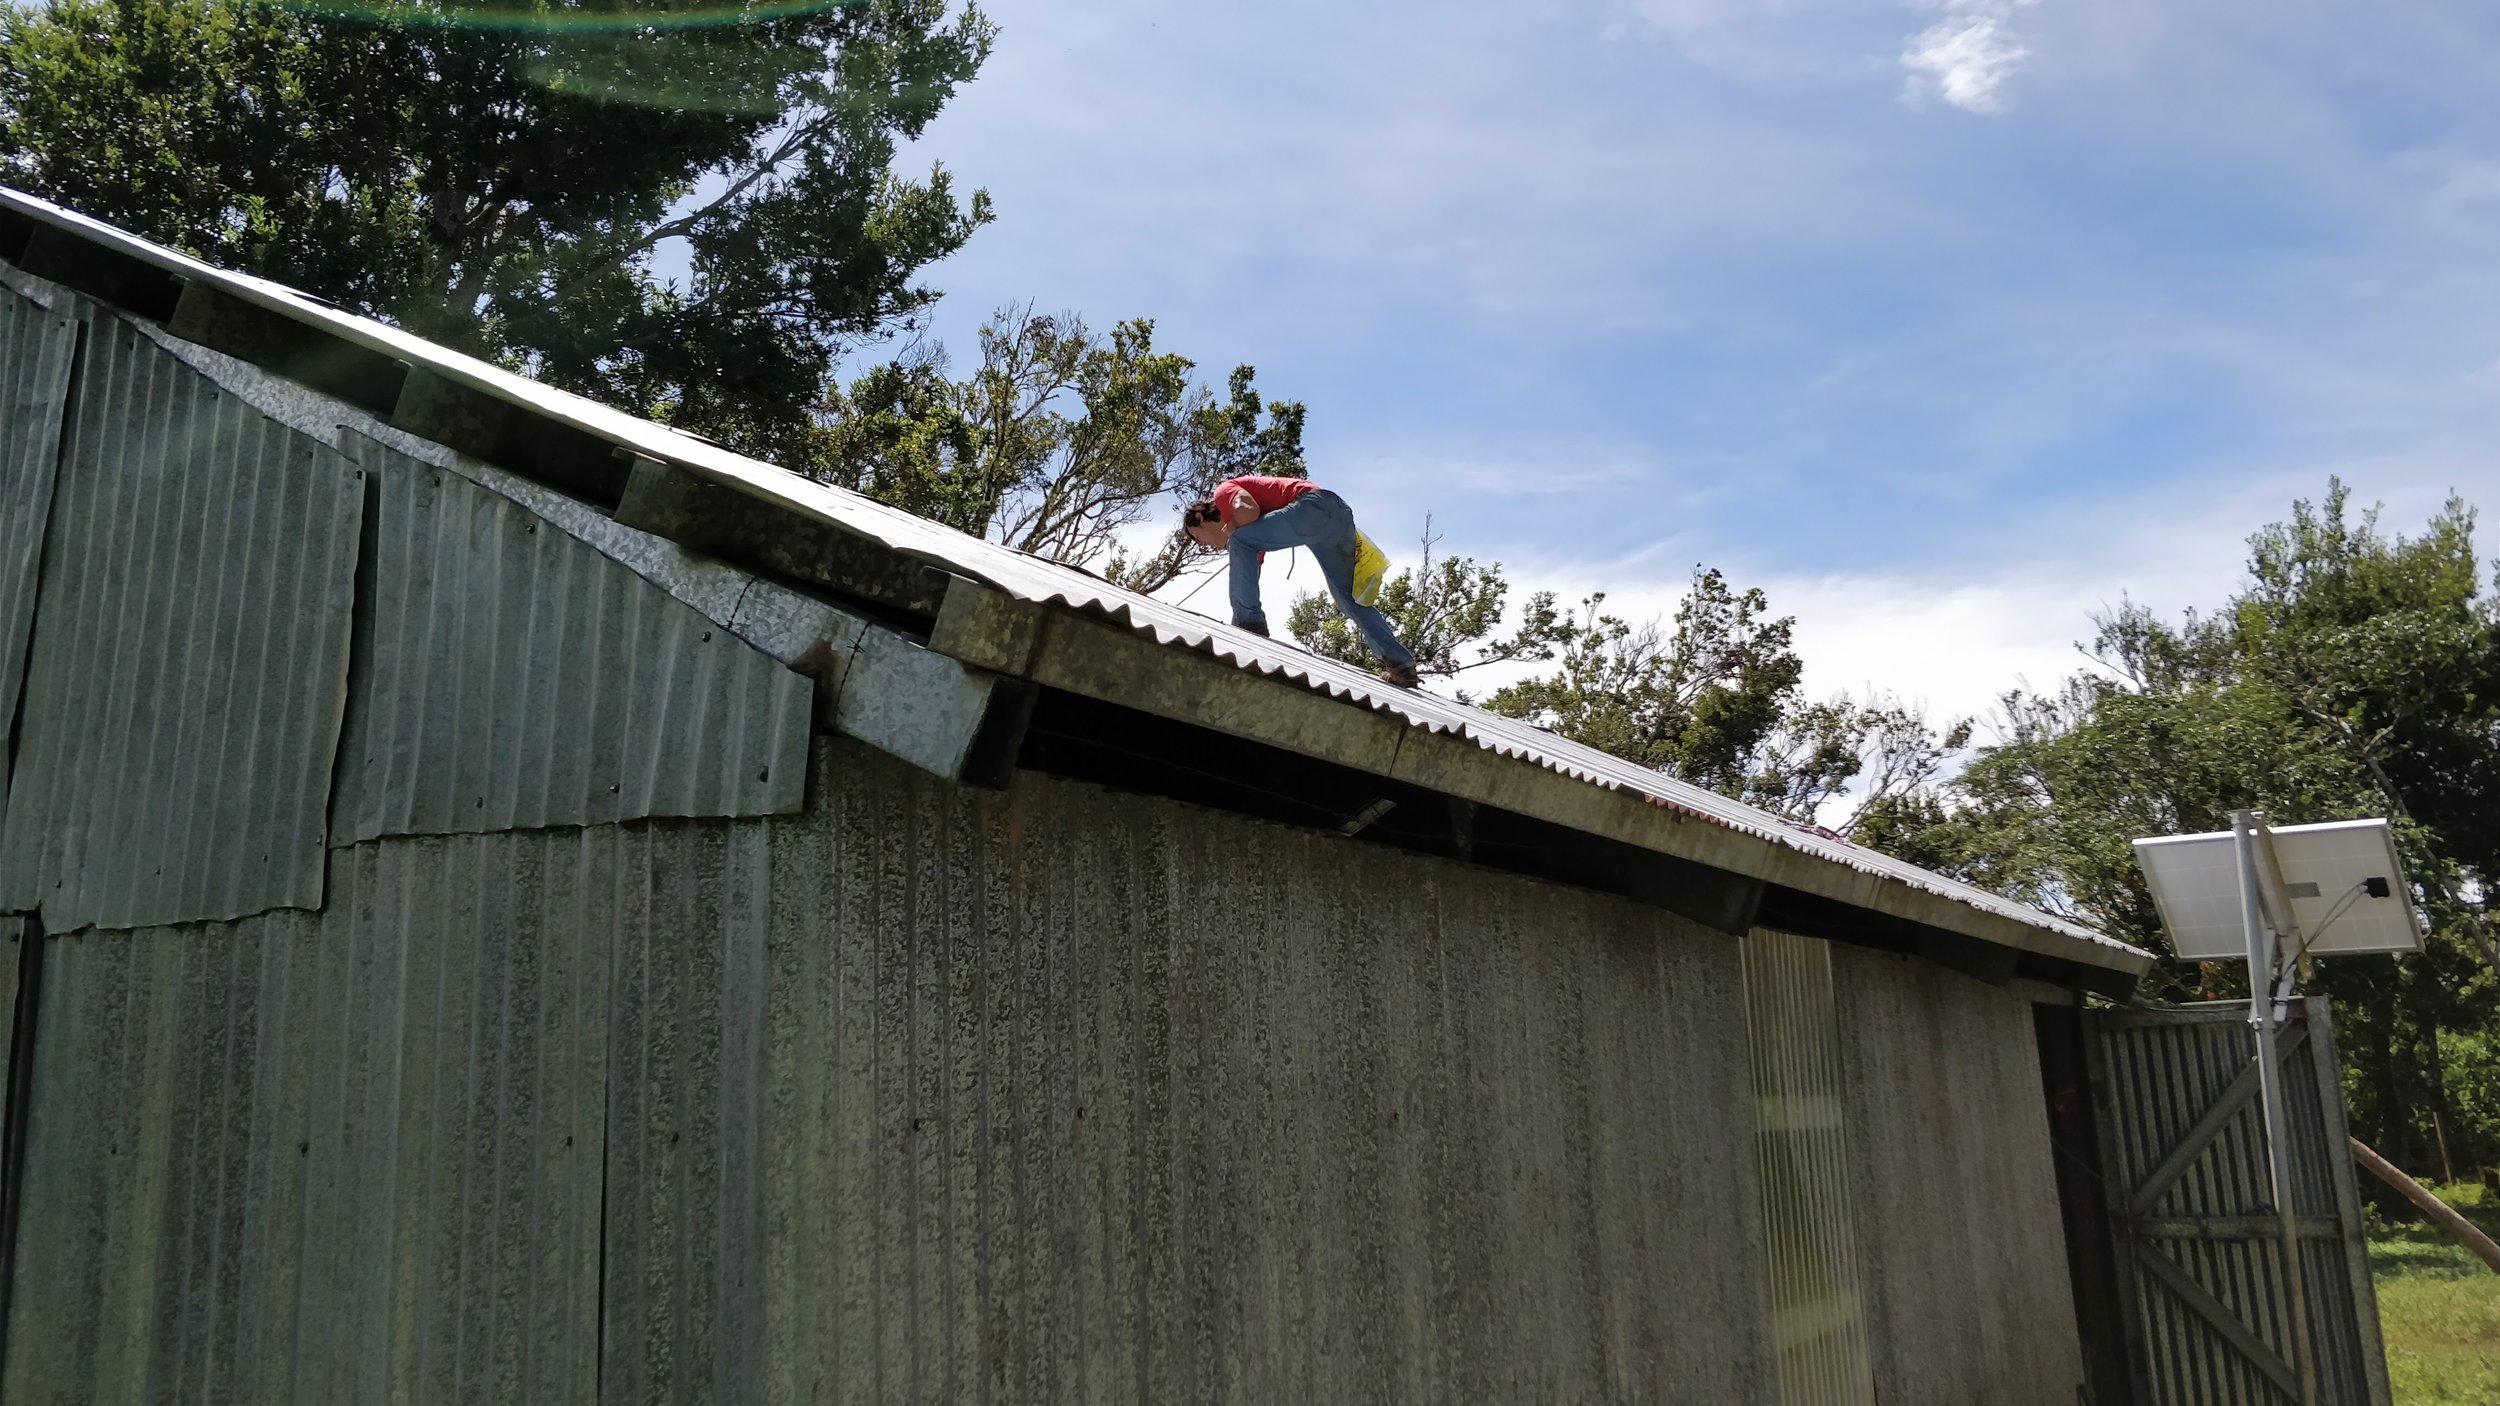 Repairs to the roof and other parts of the building of more than 10 yrs old.